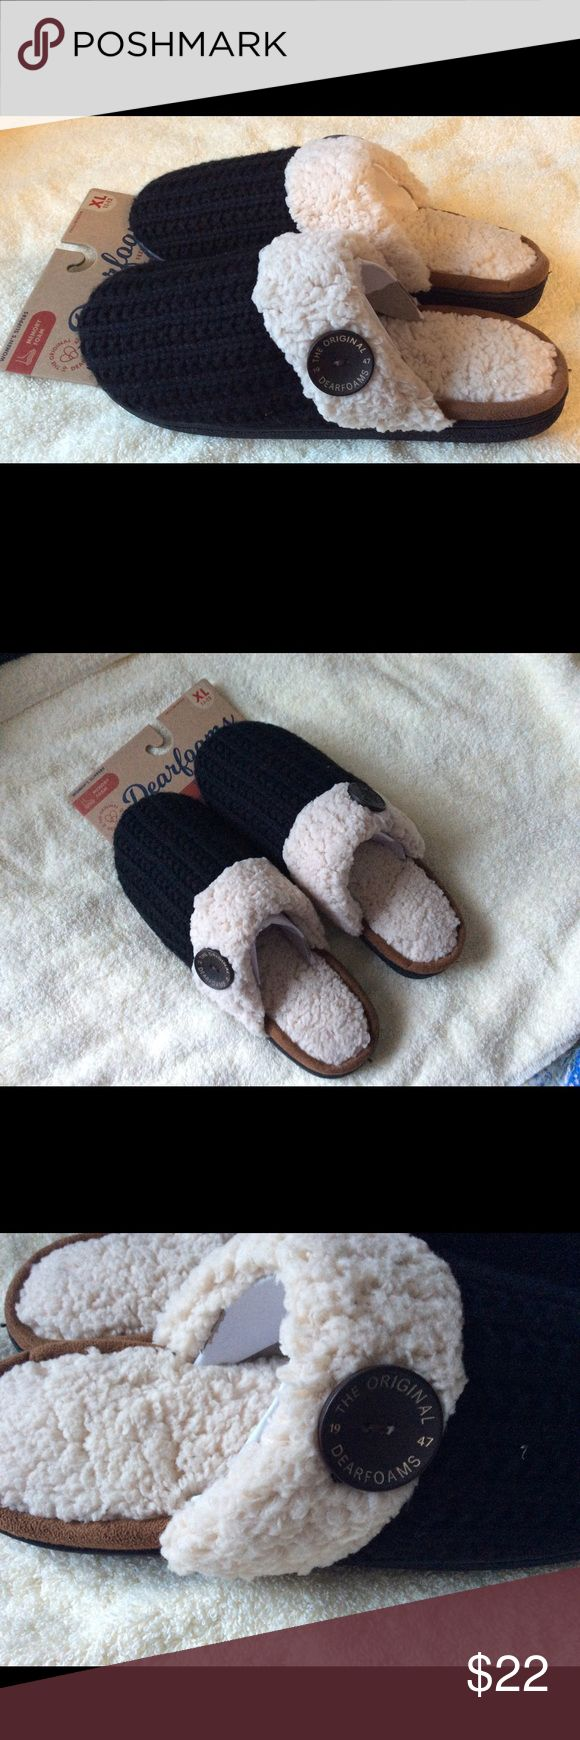 1000 Ideas About Dearfoam Slippers On Pinterest Women39s